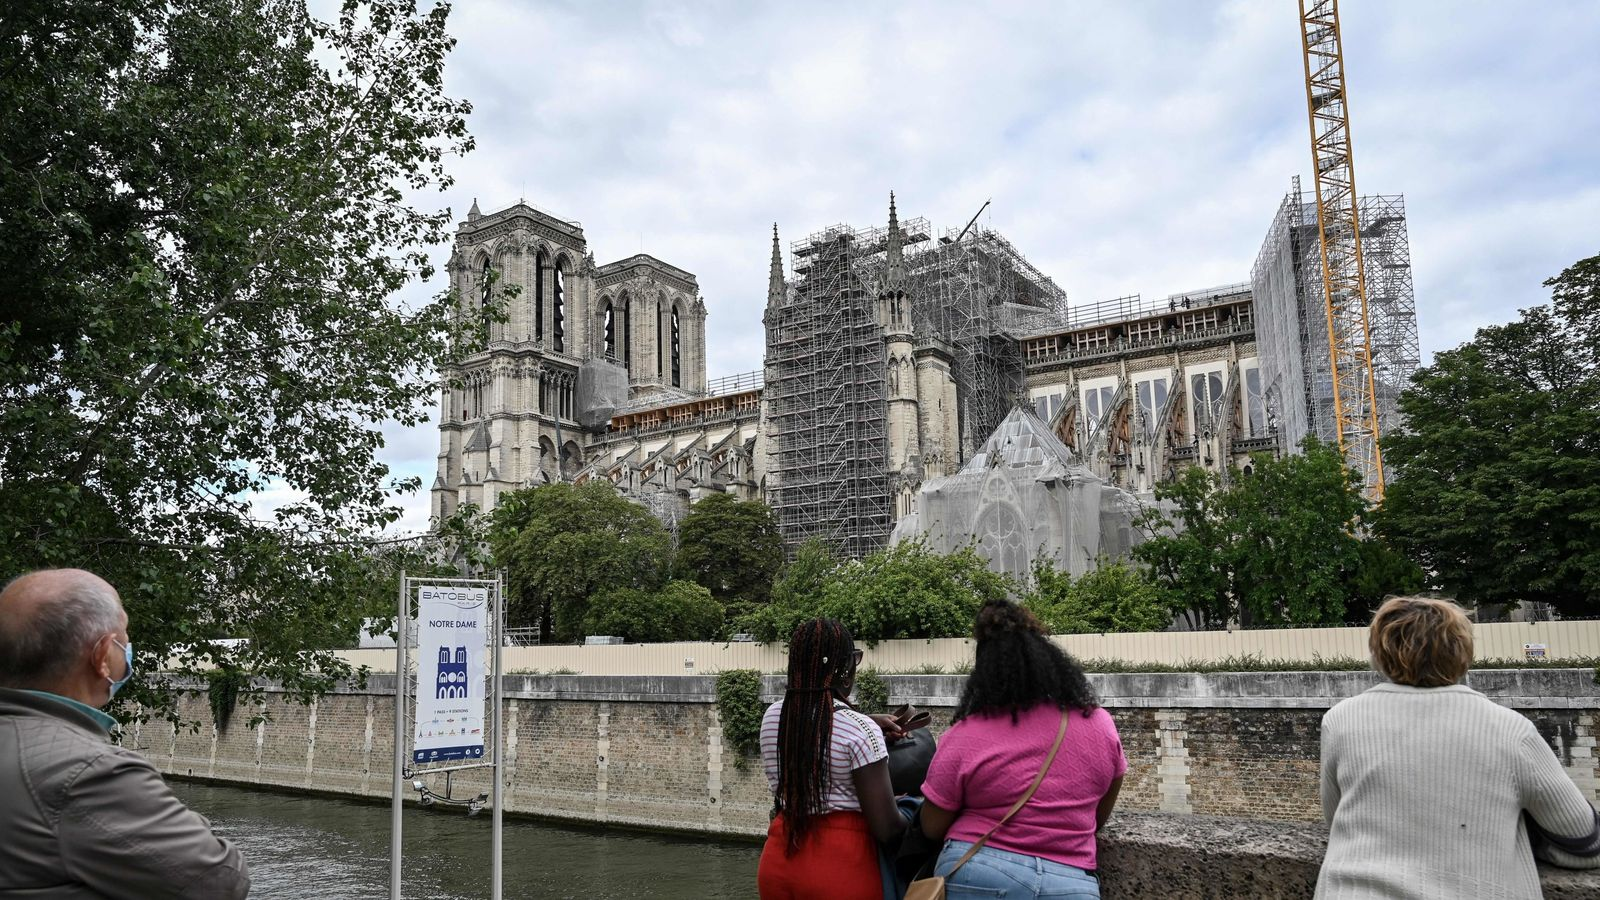 Notre-Dame will be rebuilt exactly as it was before fire